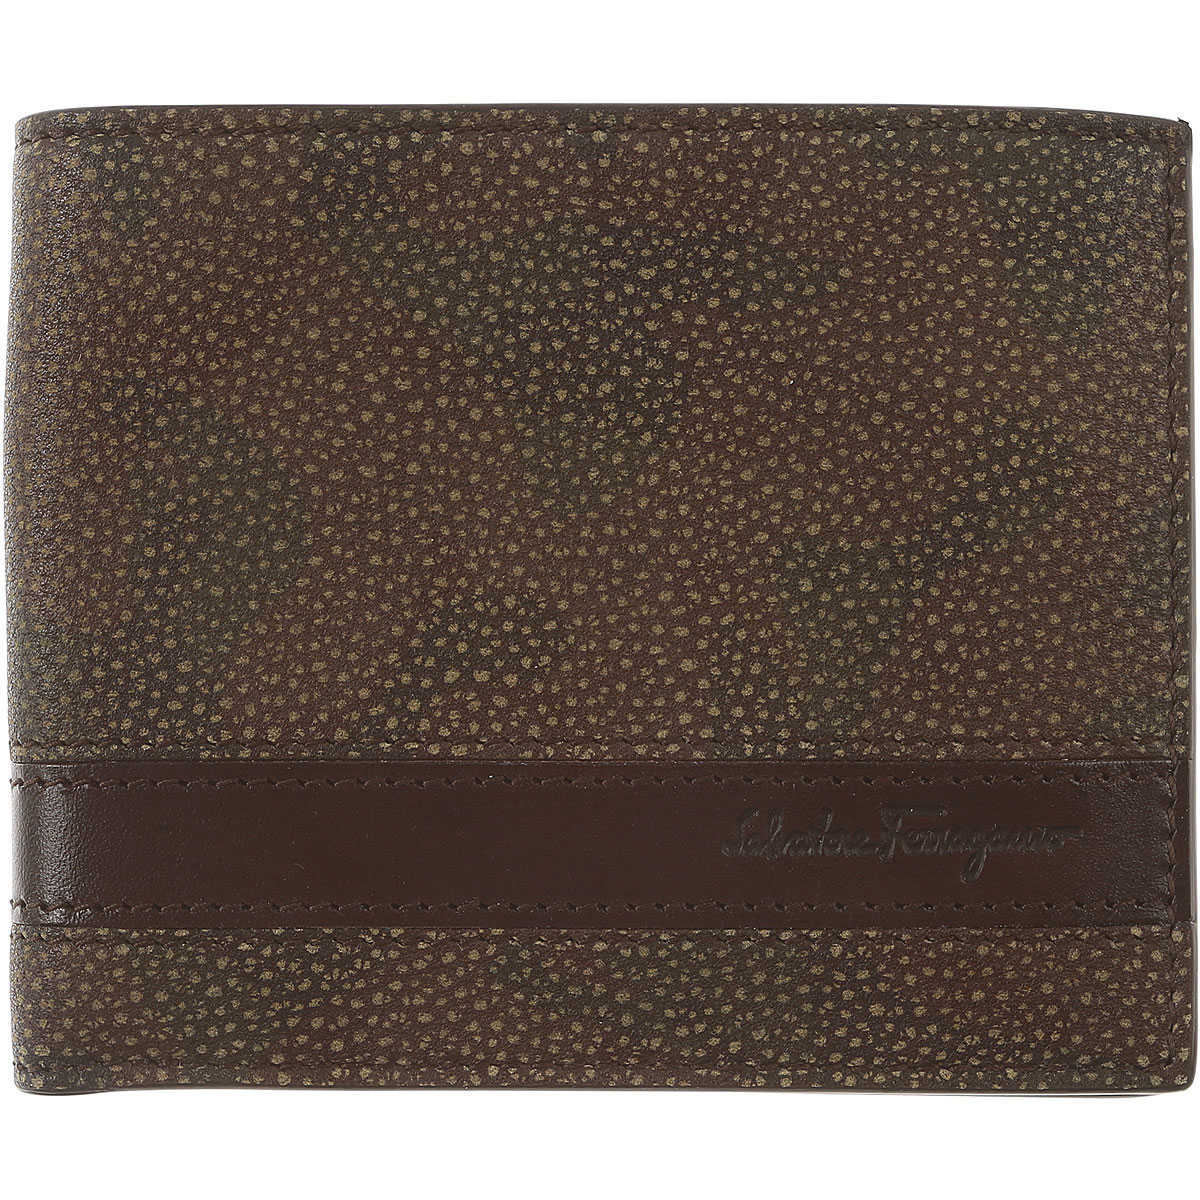 Salvatore Ferragamo Mens Wallets On Sale in Outlet Brown SE - GOOFASH